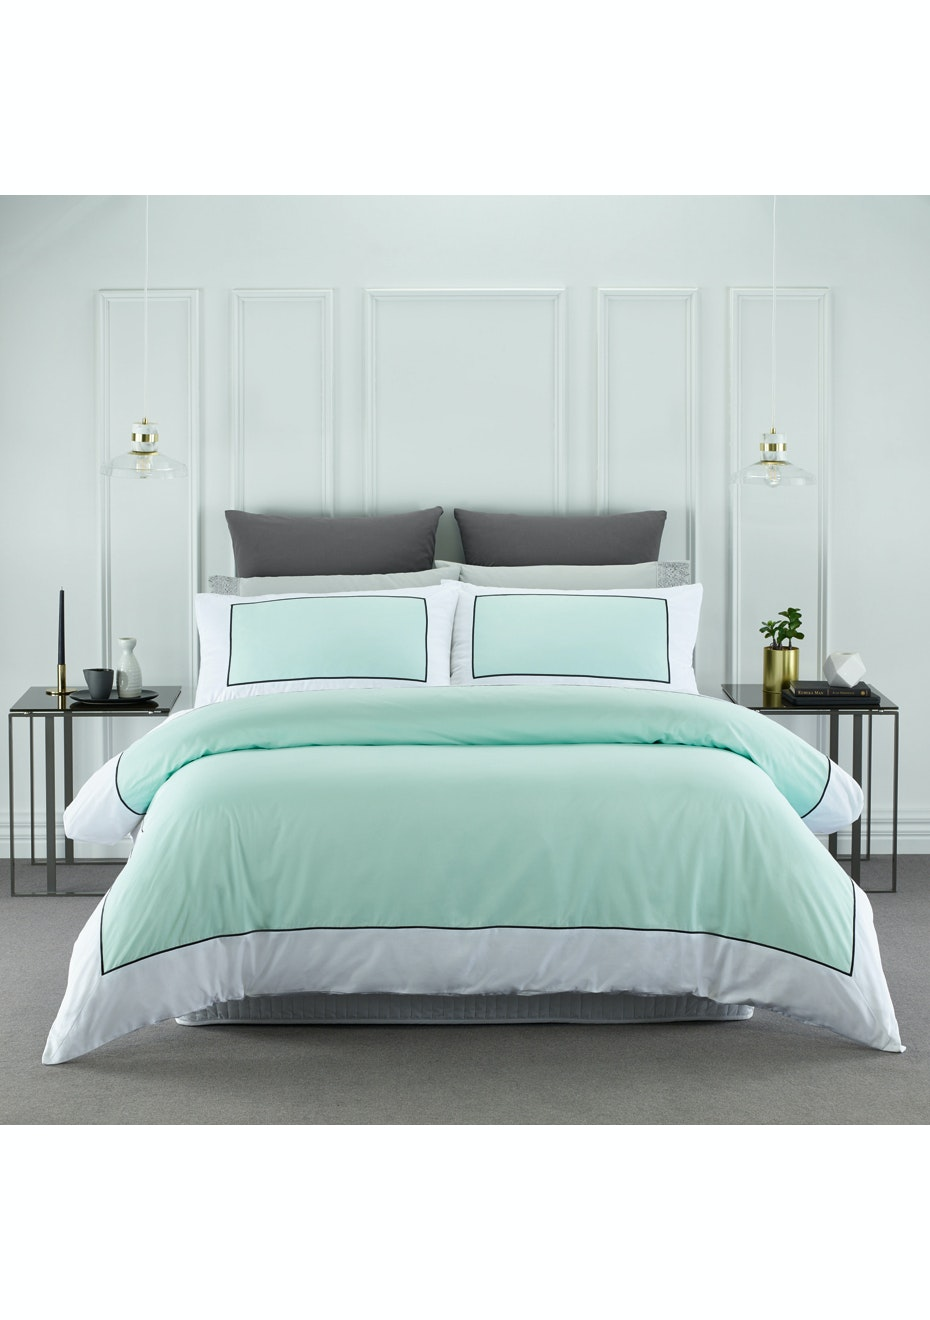 Style & Co 1000 Thread count Egyptian Cotton Hotel Collection Ascot Quilt Cover sets Queen Mist